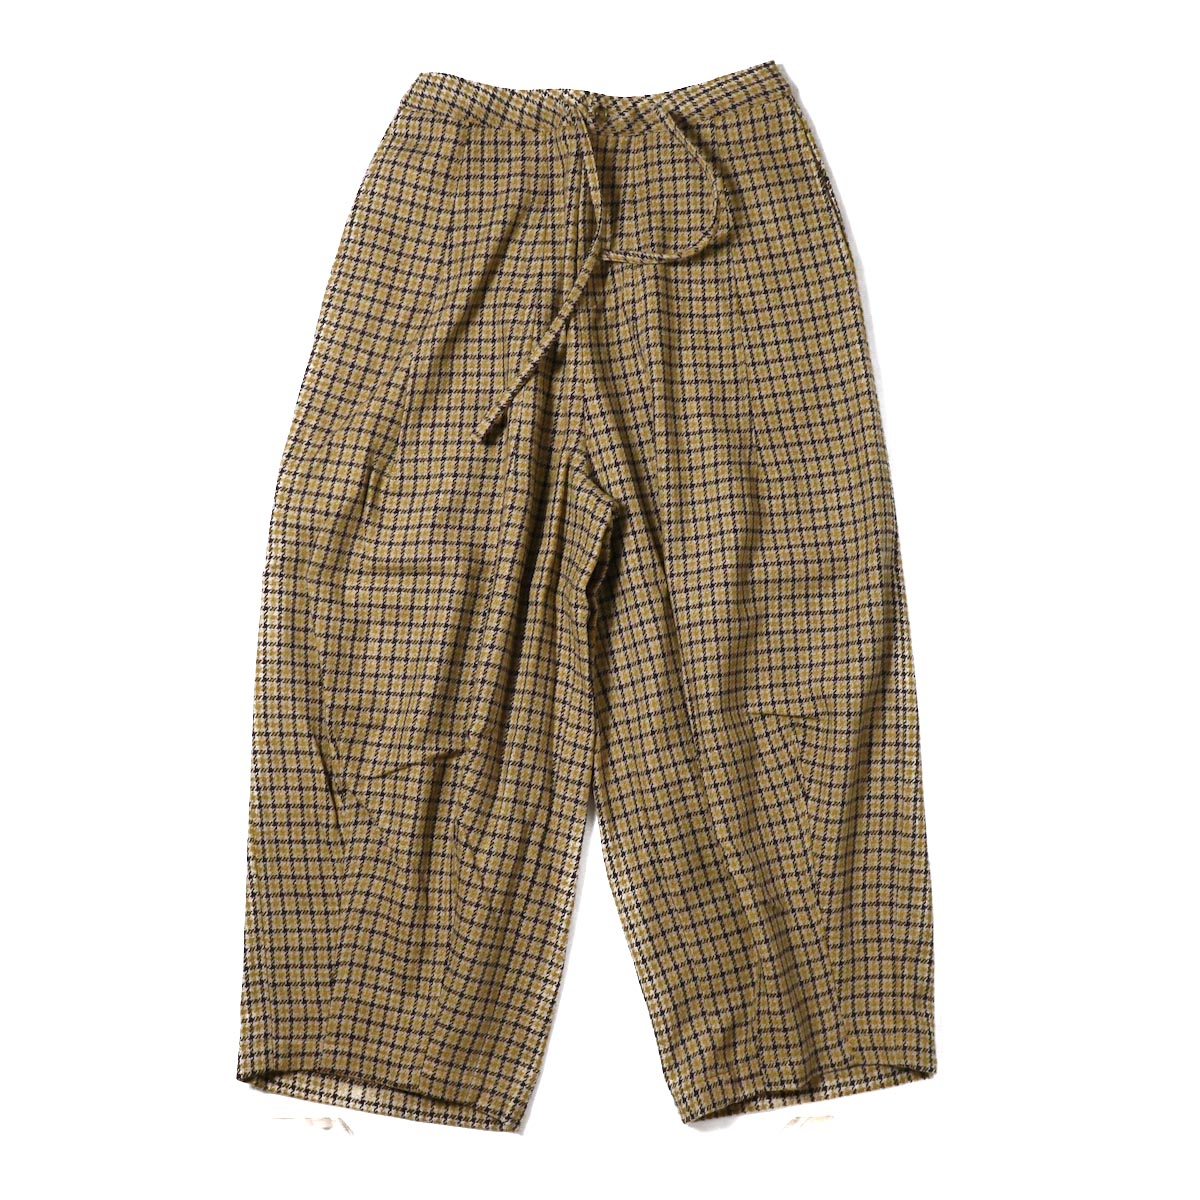 NEEDLES (WOMENS) / Darts Military Pant W/Pe/A/N Gun Club Plaid -BROWN / YELLOW